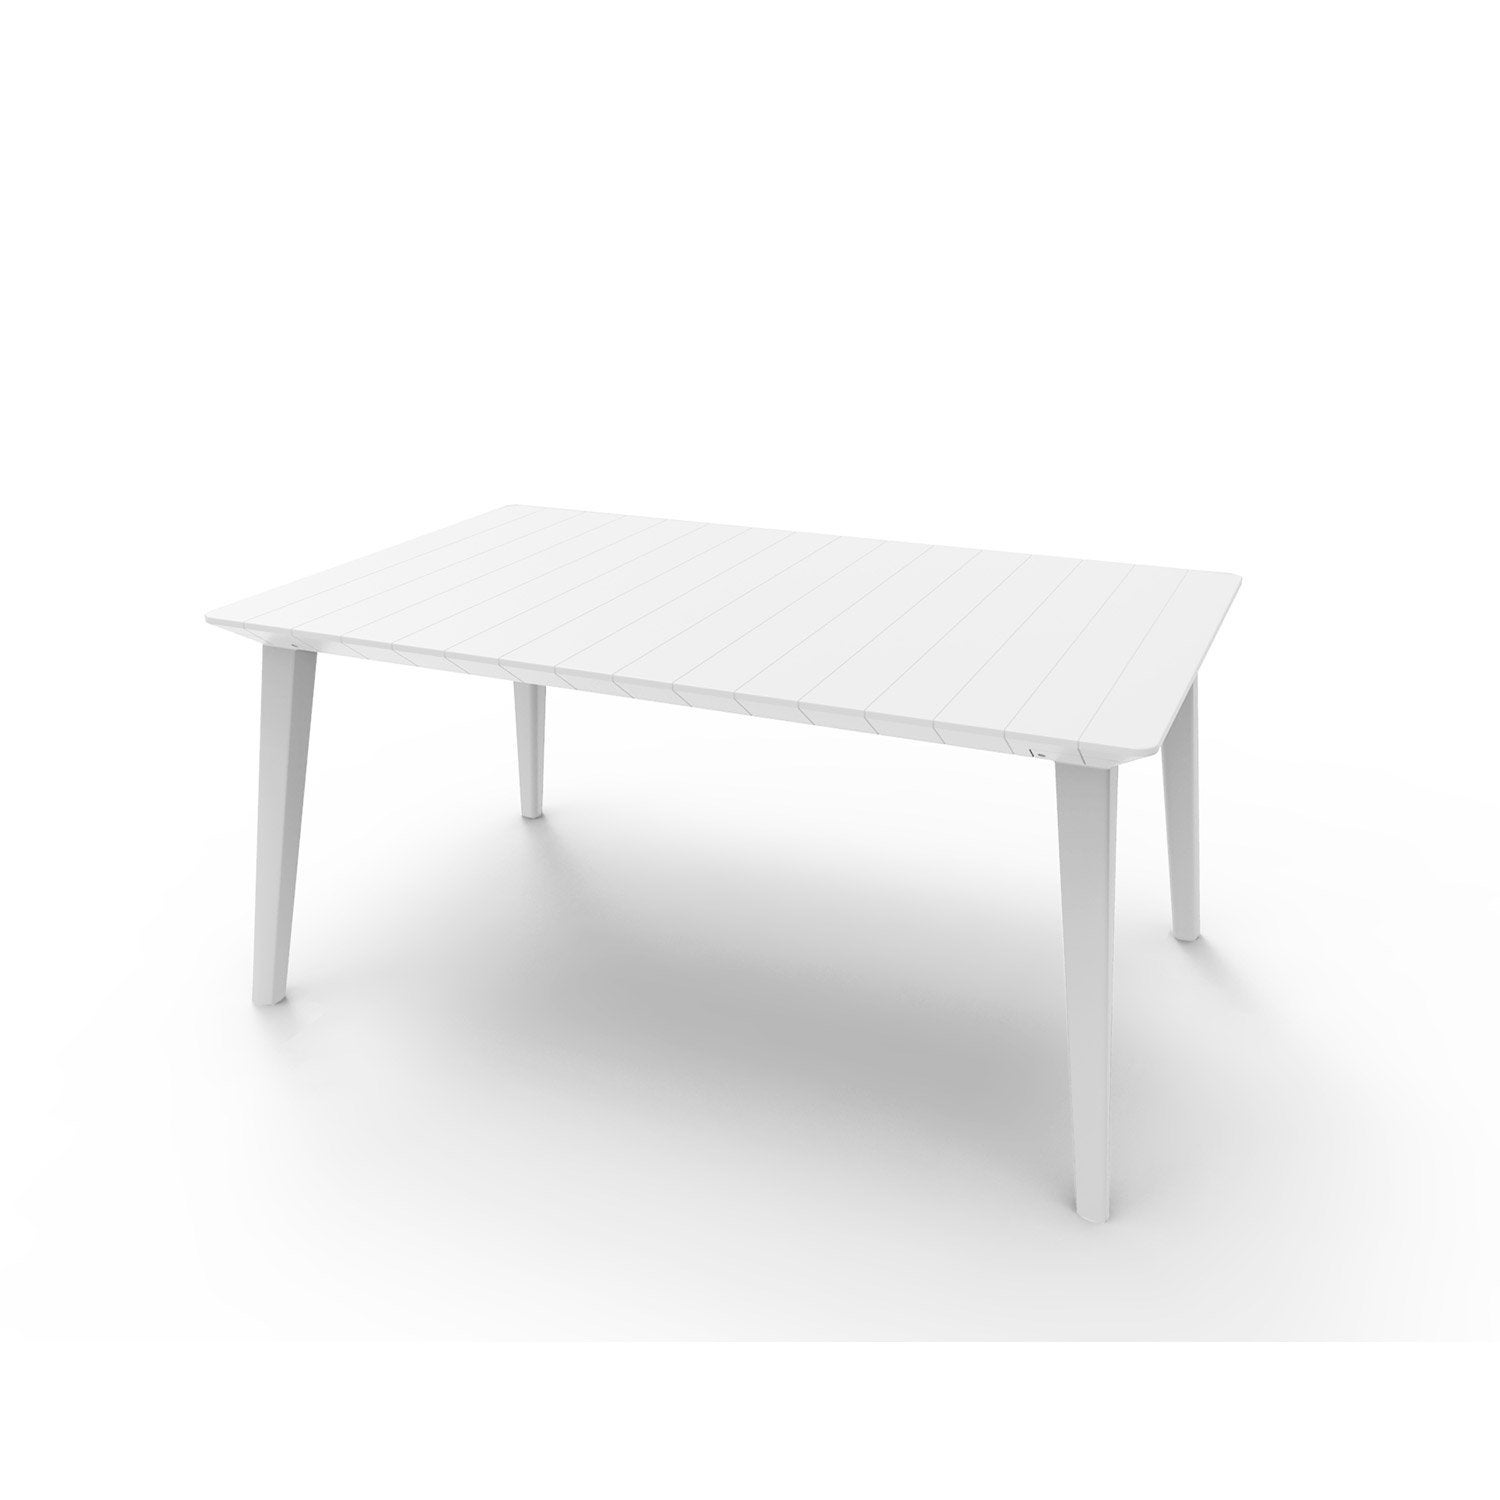 Table de jardin Akola rectangulaire blanc 4/6 personnes | Leroy Merlin